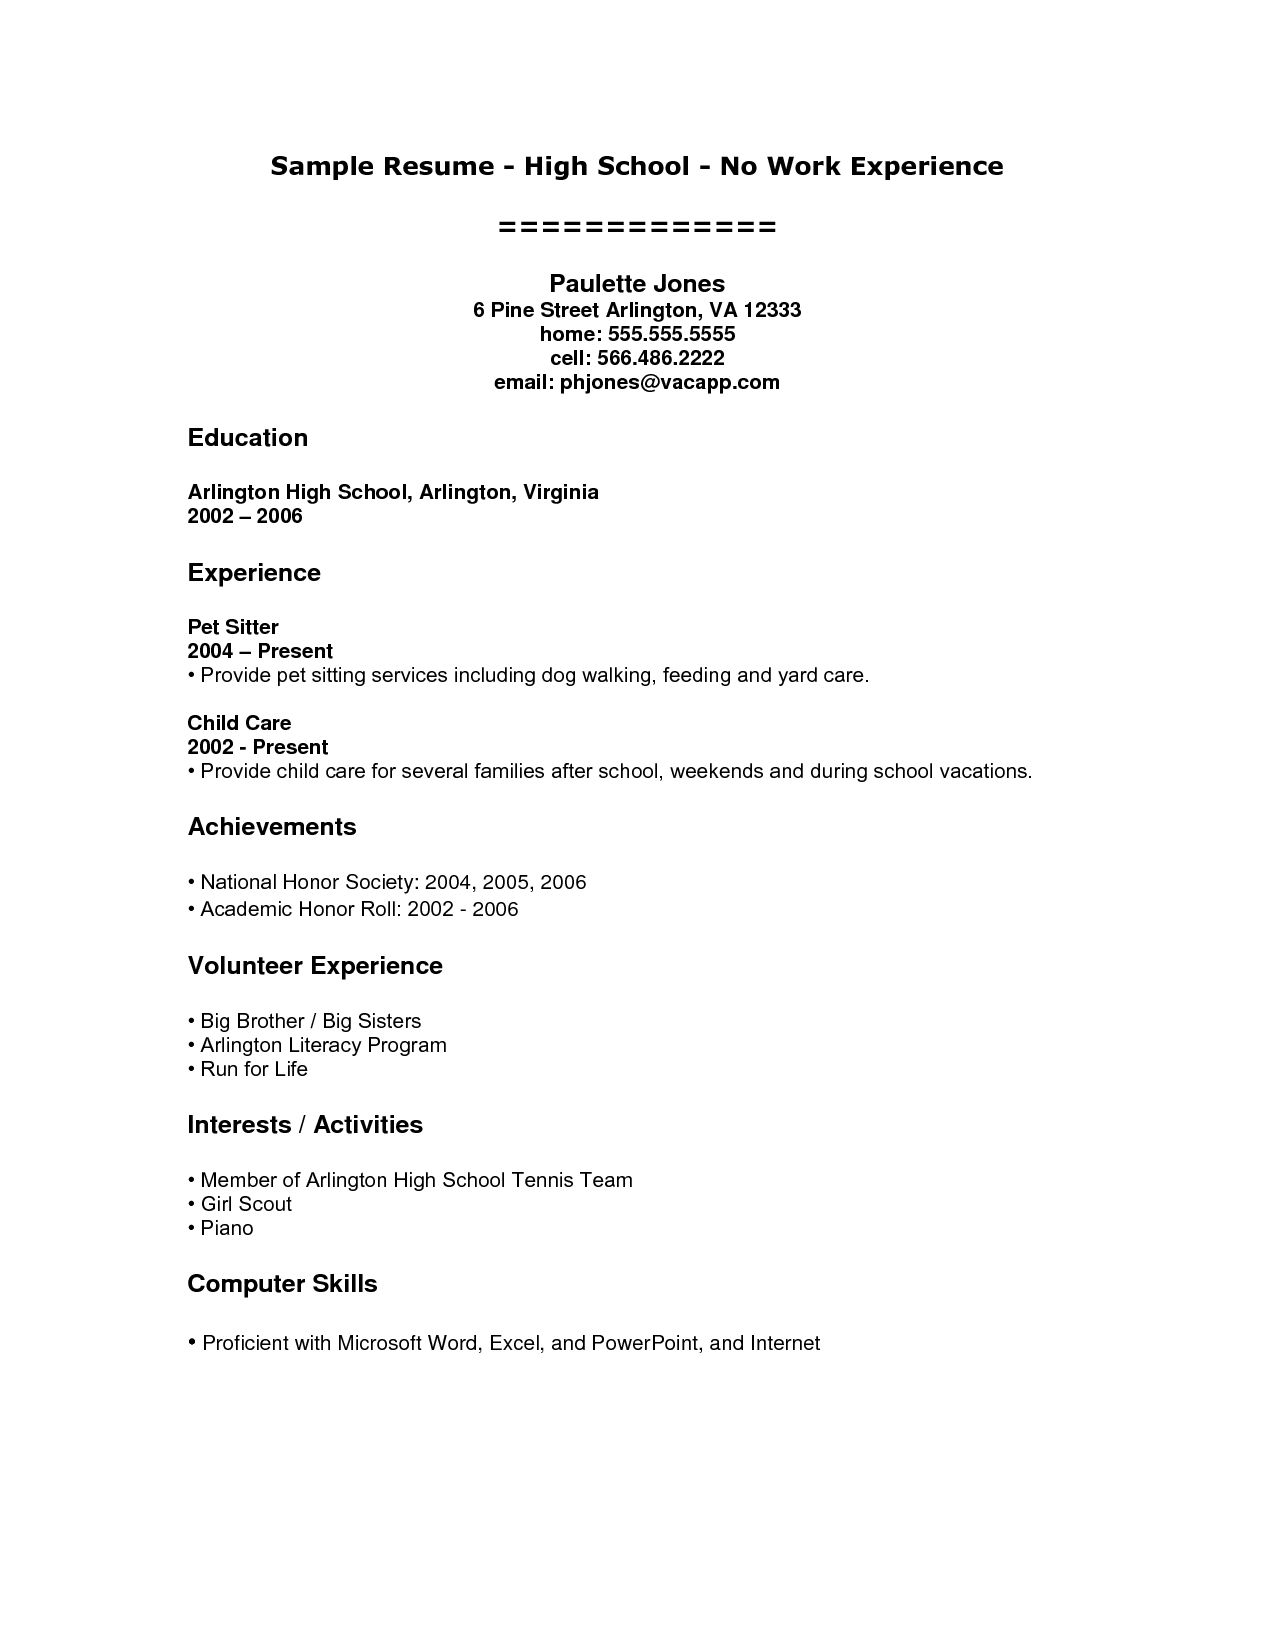 free resume templates no work experience